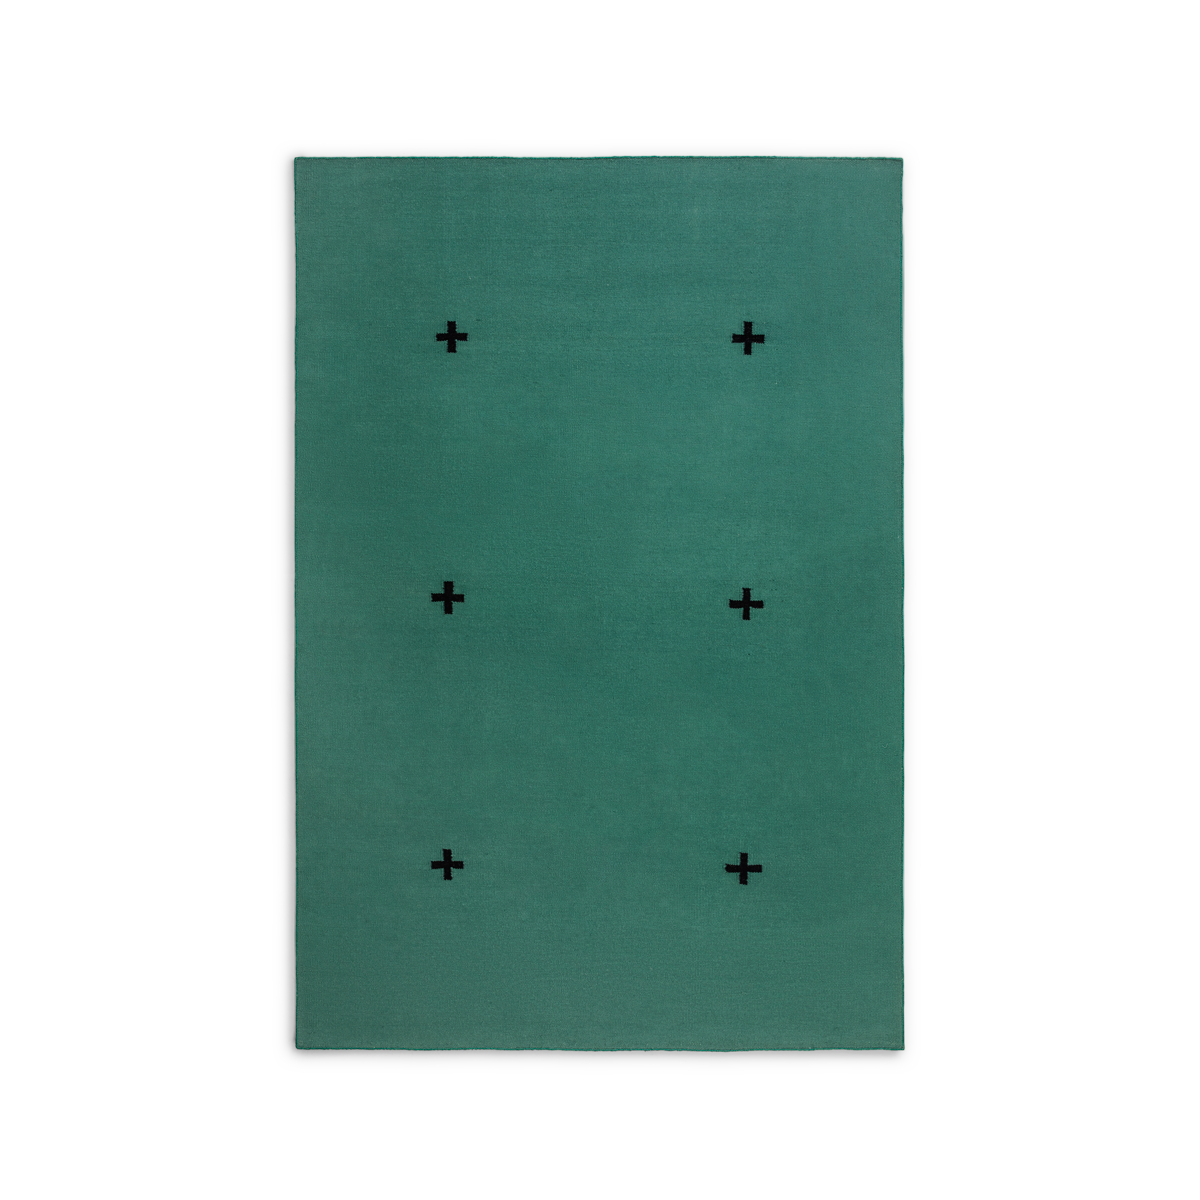 Product image of the flatweave rug Plus in the color Green. The rug itself is a green color with a graphic plus-sign pattern in a black shade.